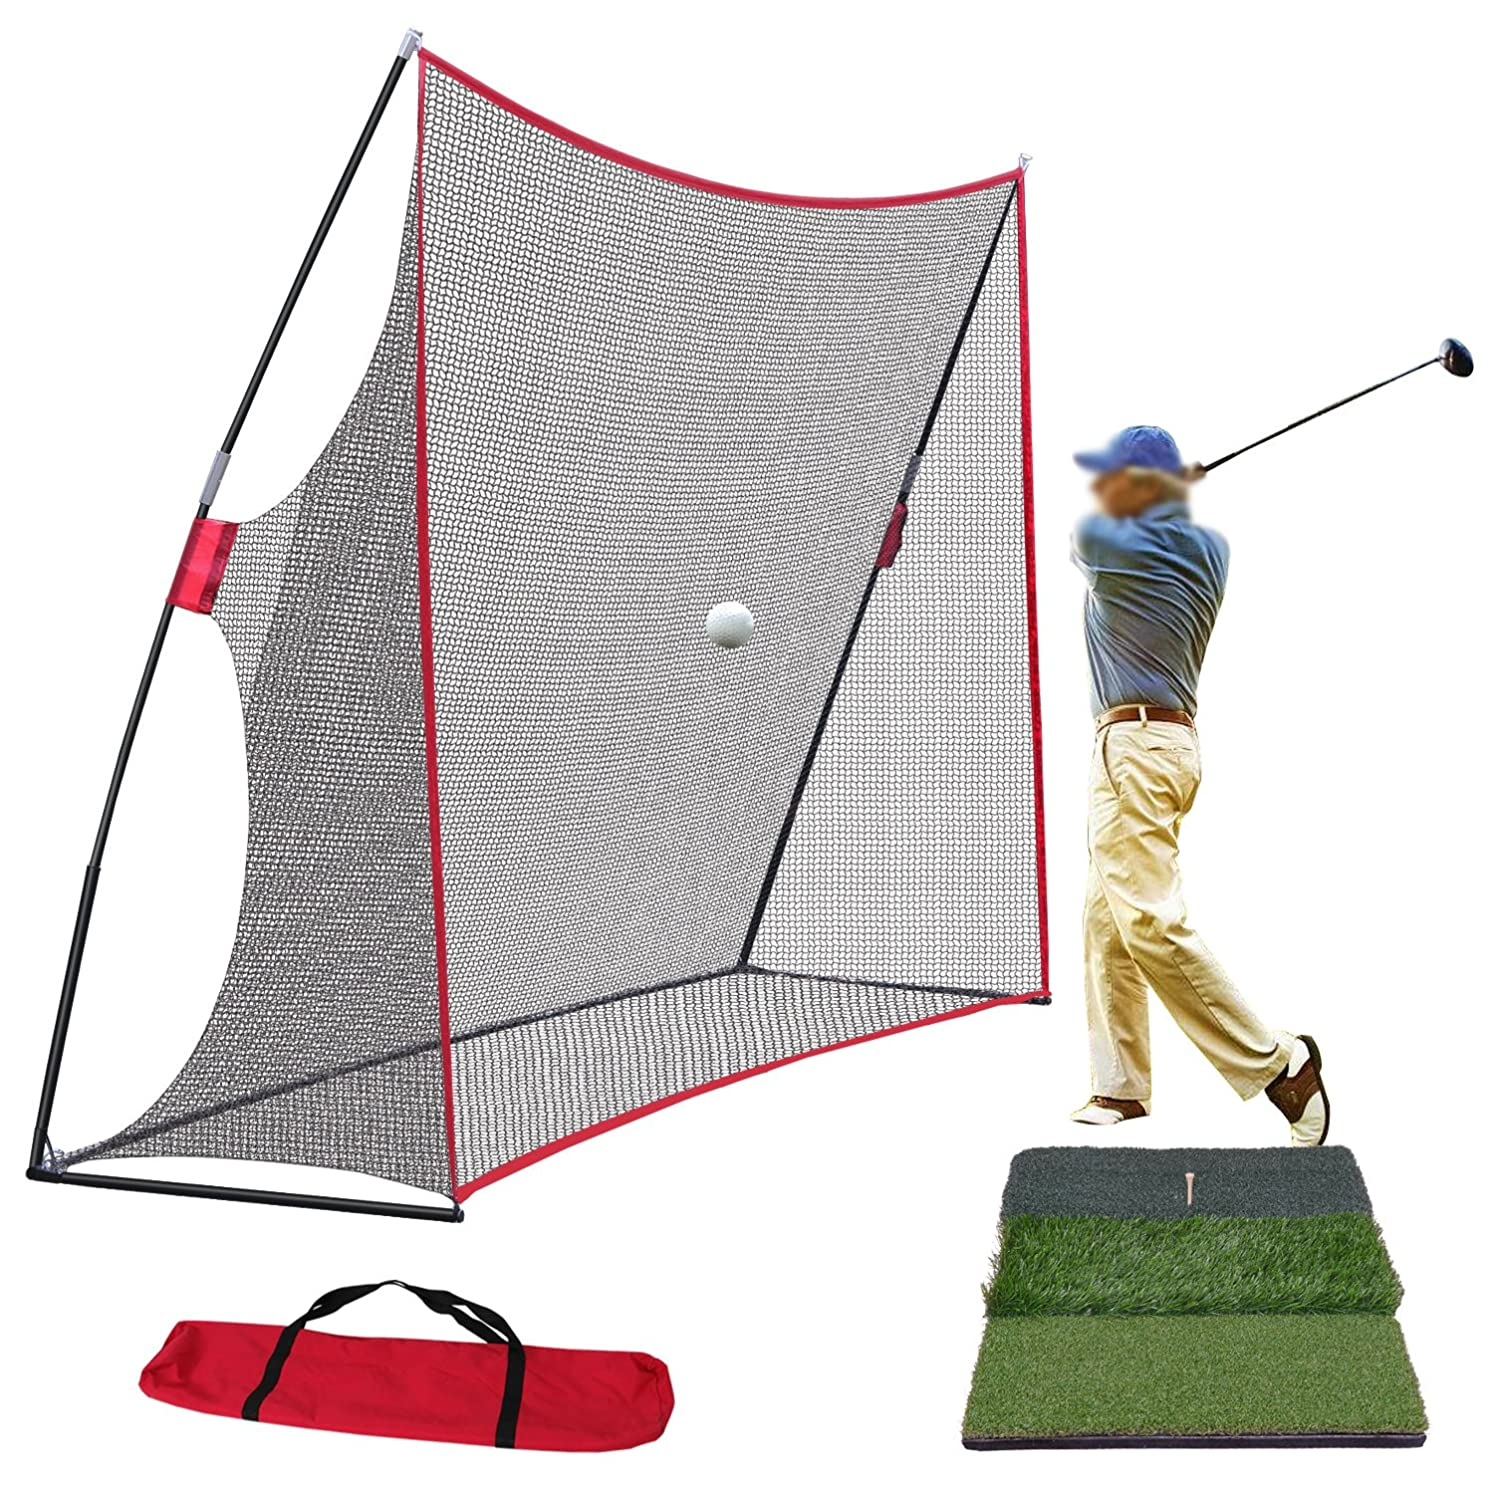 Smartxchoices Golf Net and Mat Bundle - 10x7ft Golf Net with Frame + Tri-Turf Hitting Mat with Carry Bag for Golf Practice Pitching Training Driving Backyard/Indoor/Outdoor cvpgpyhzw9069652